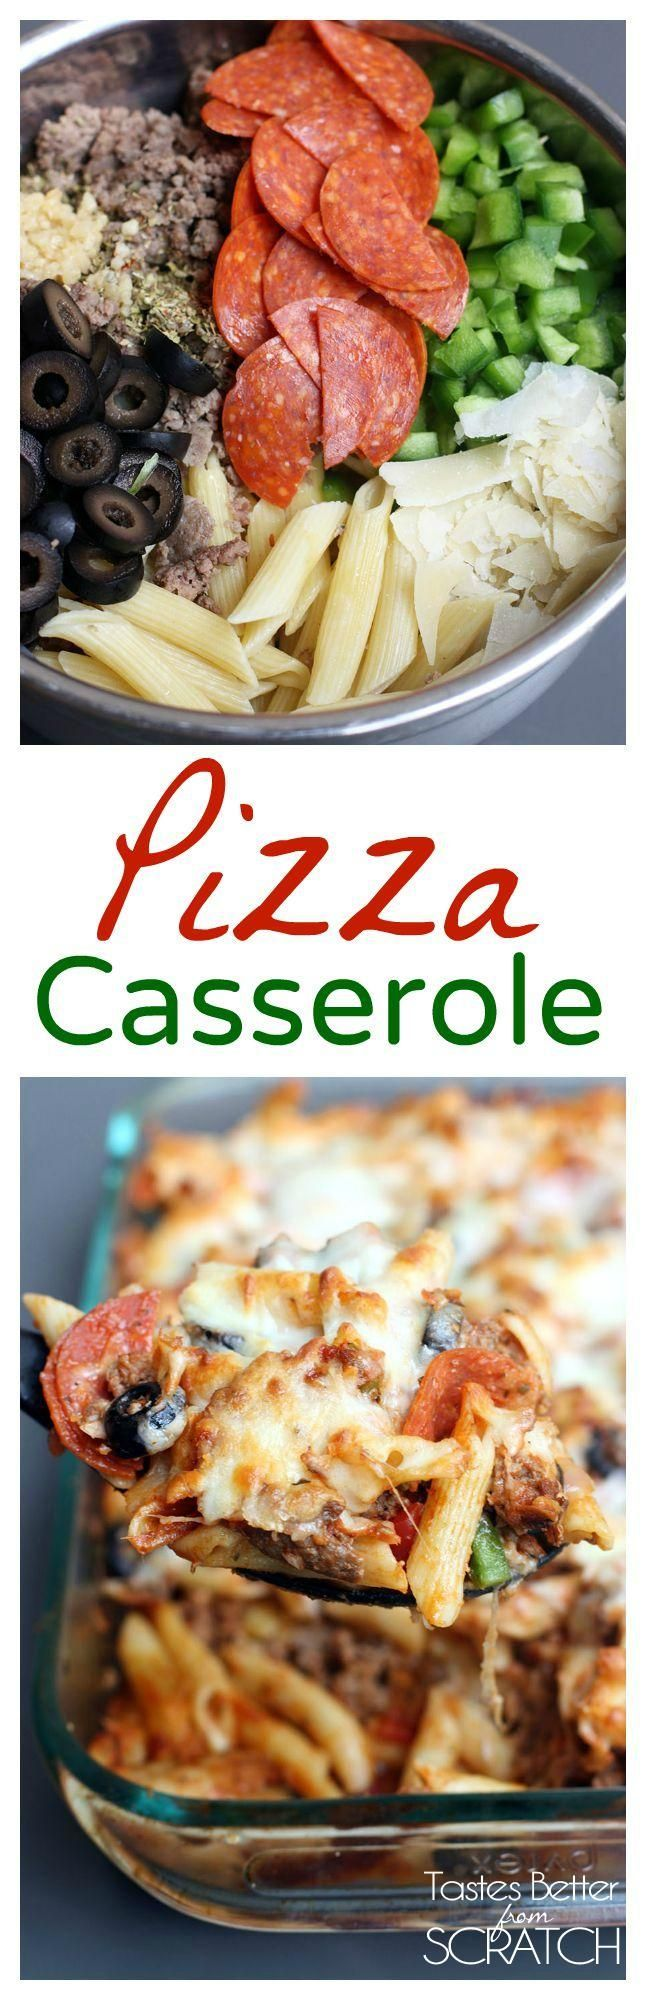 One of my husbands all time FAVORITE meals is this Pizza Casserole! Recipe from TastesBetterFromScratch.com